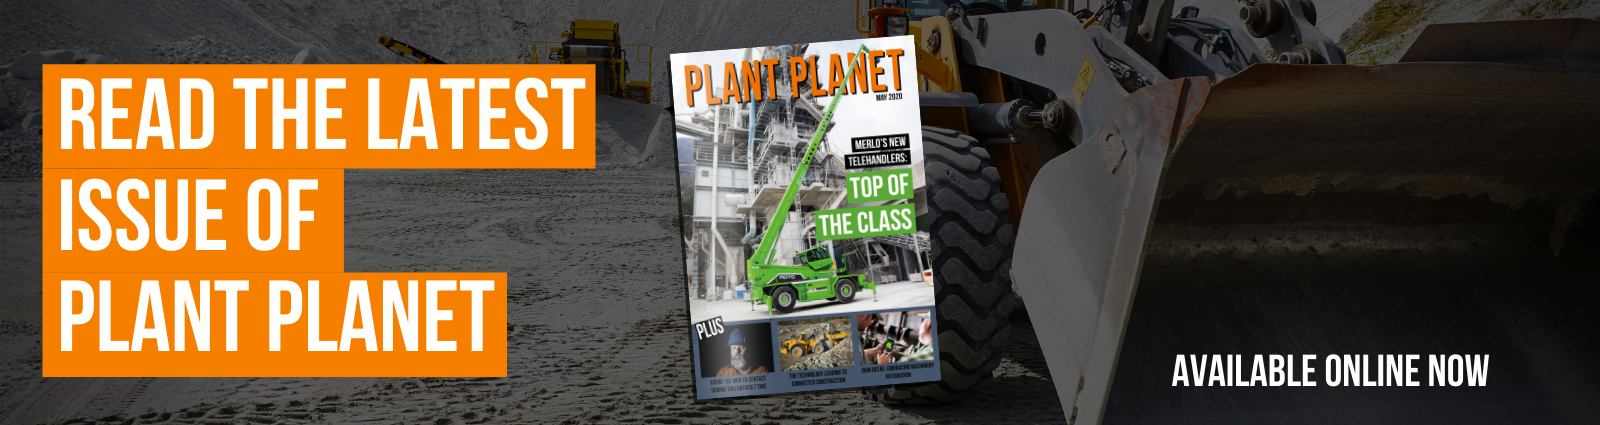 Read the Latest Issue of Plant Planet